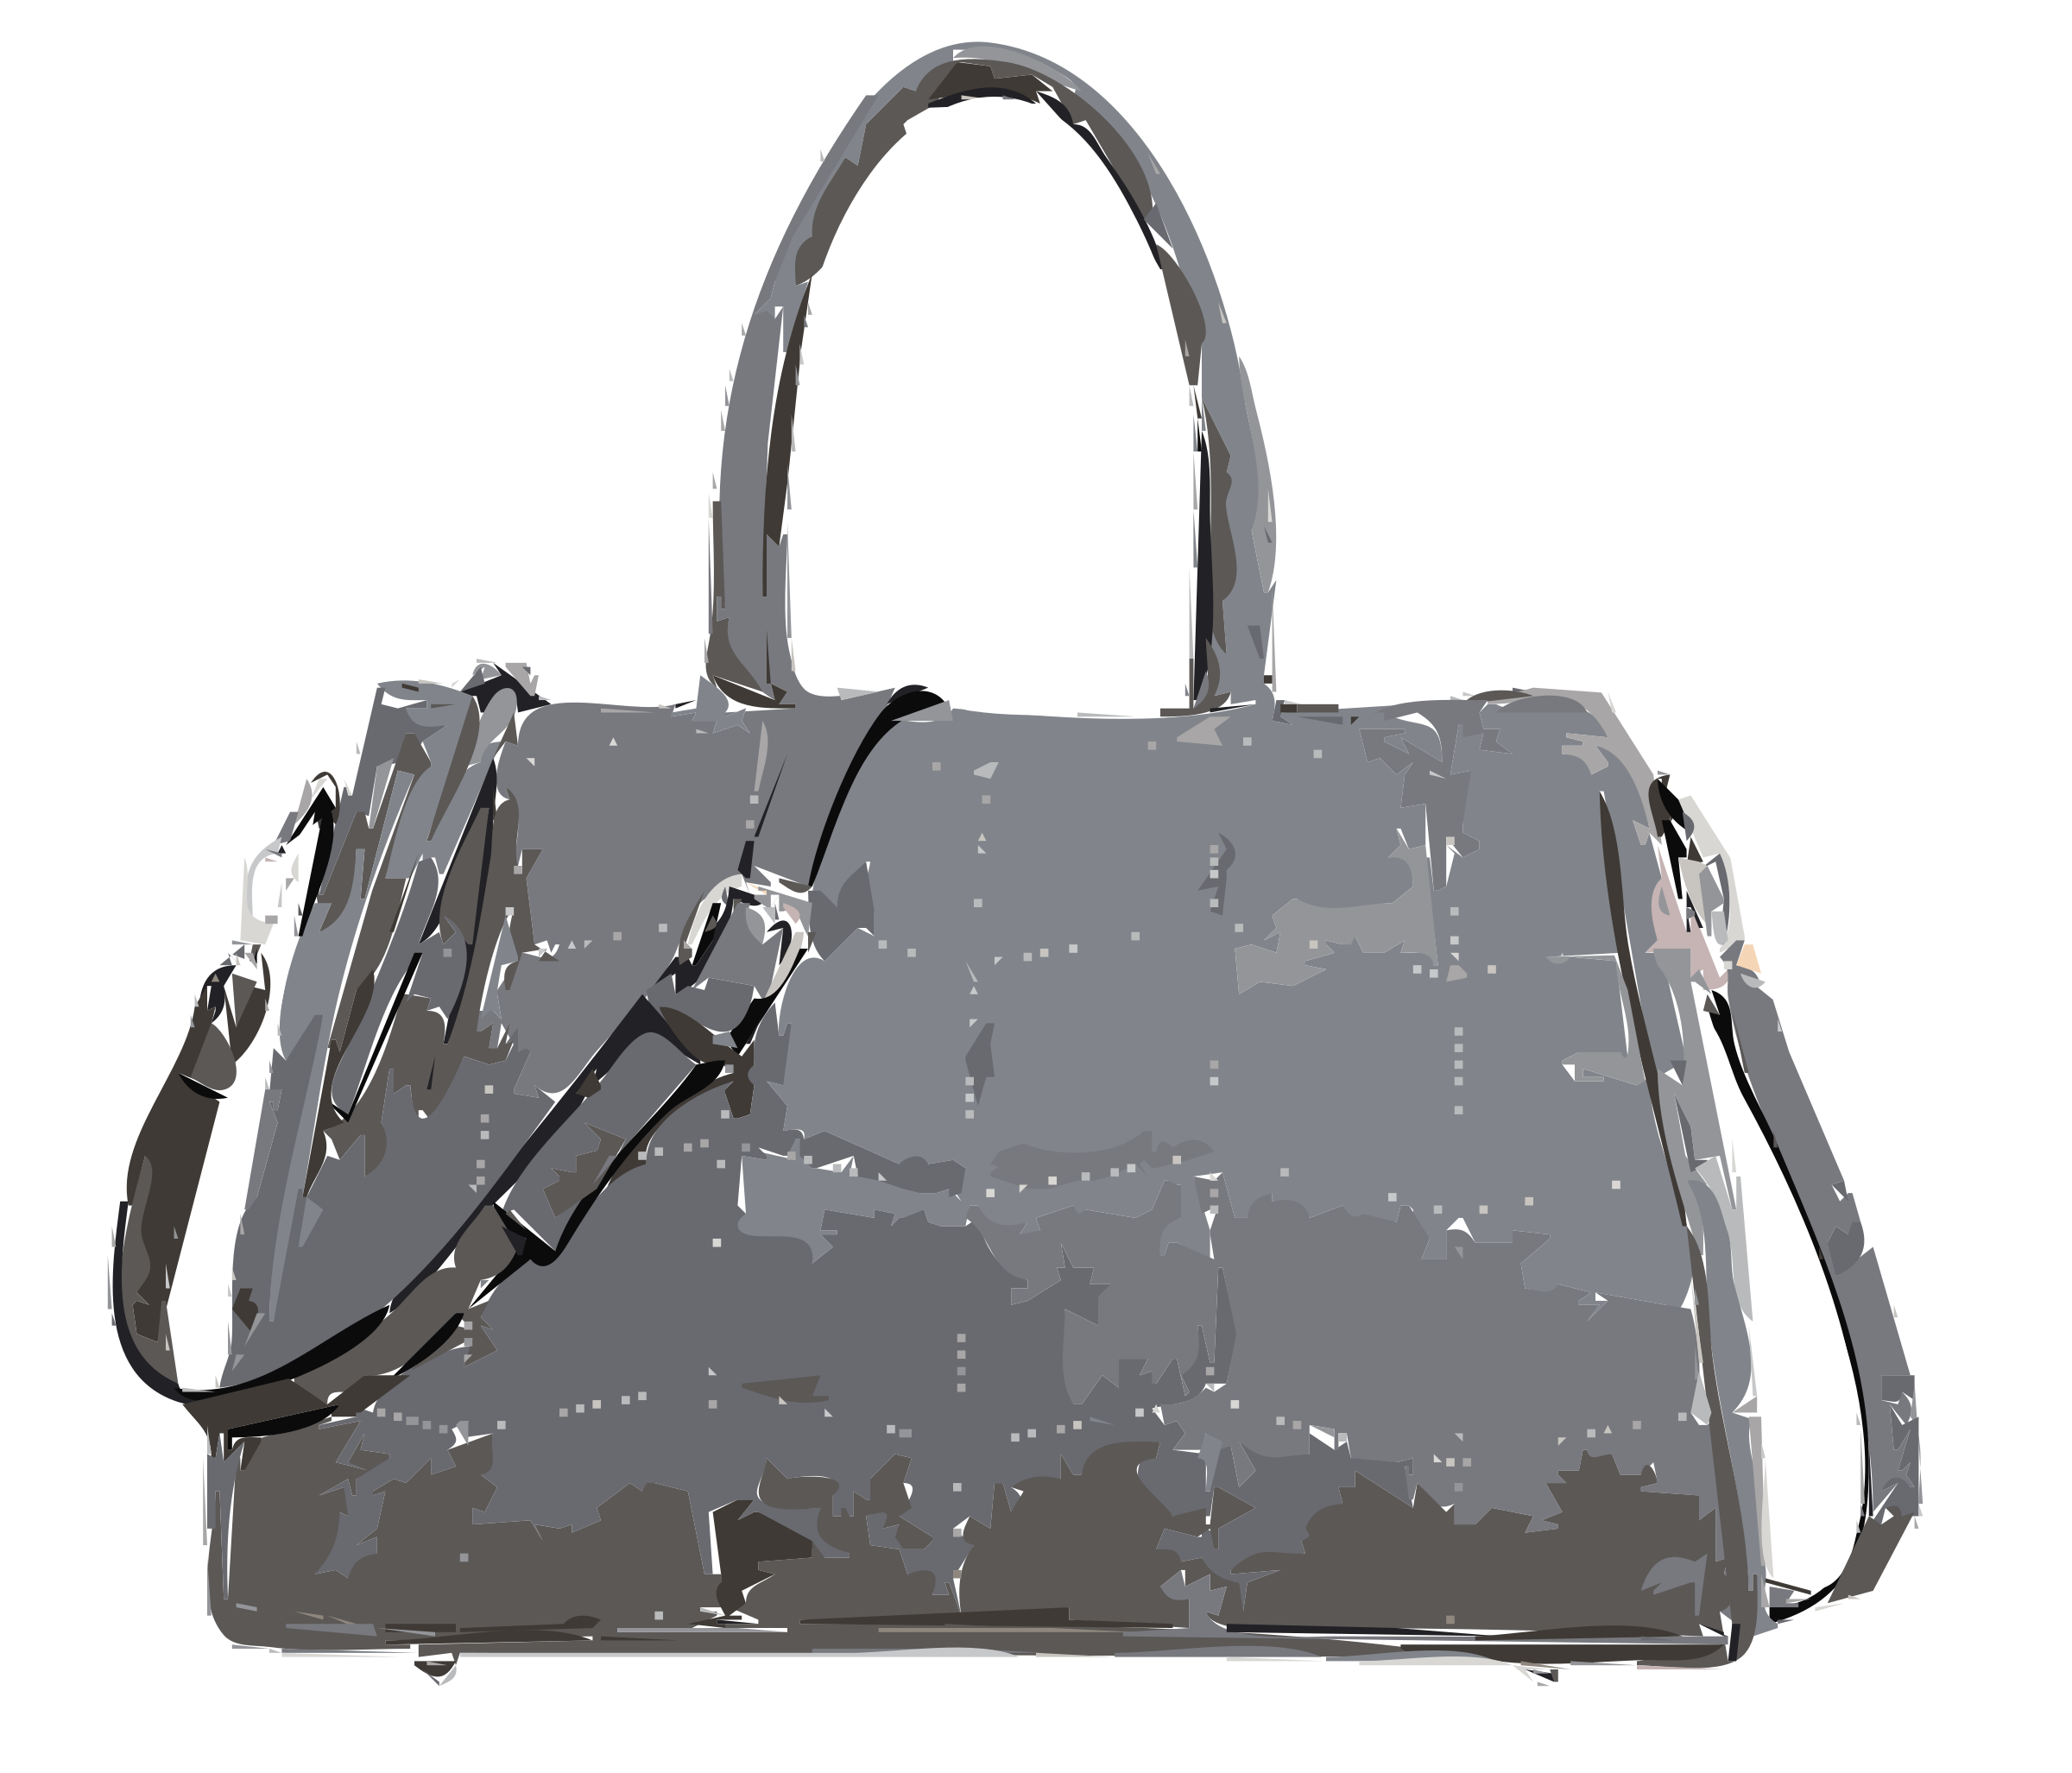 Gray handbag no logo by rejon